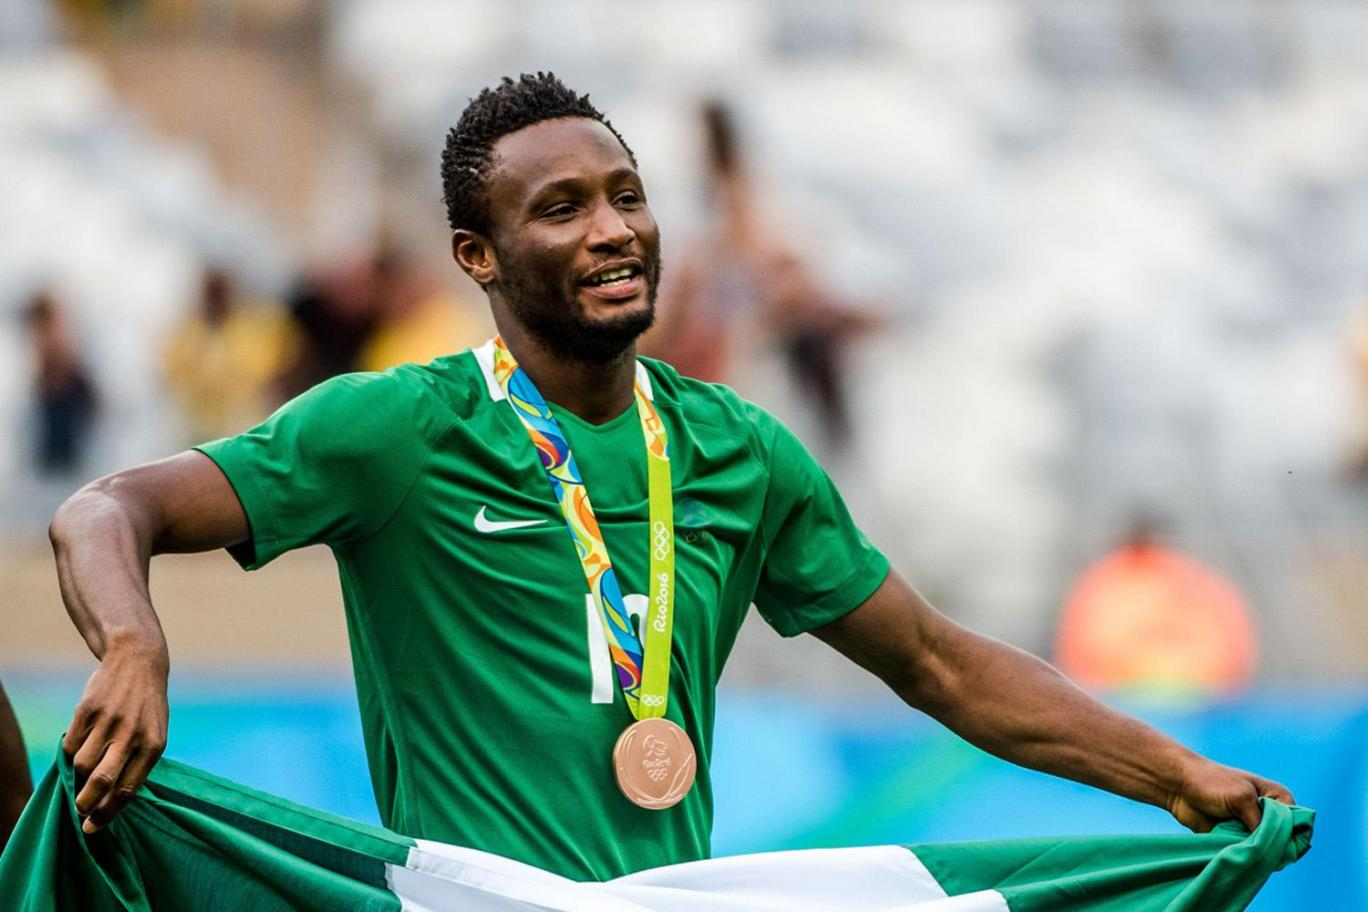 """Mikel Teases """"Jealous"""" Chelsea Mates Over Rio Bronze, Wants Tokyo 2020 Action"""